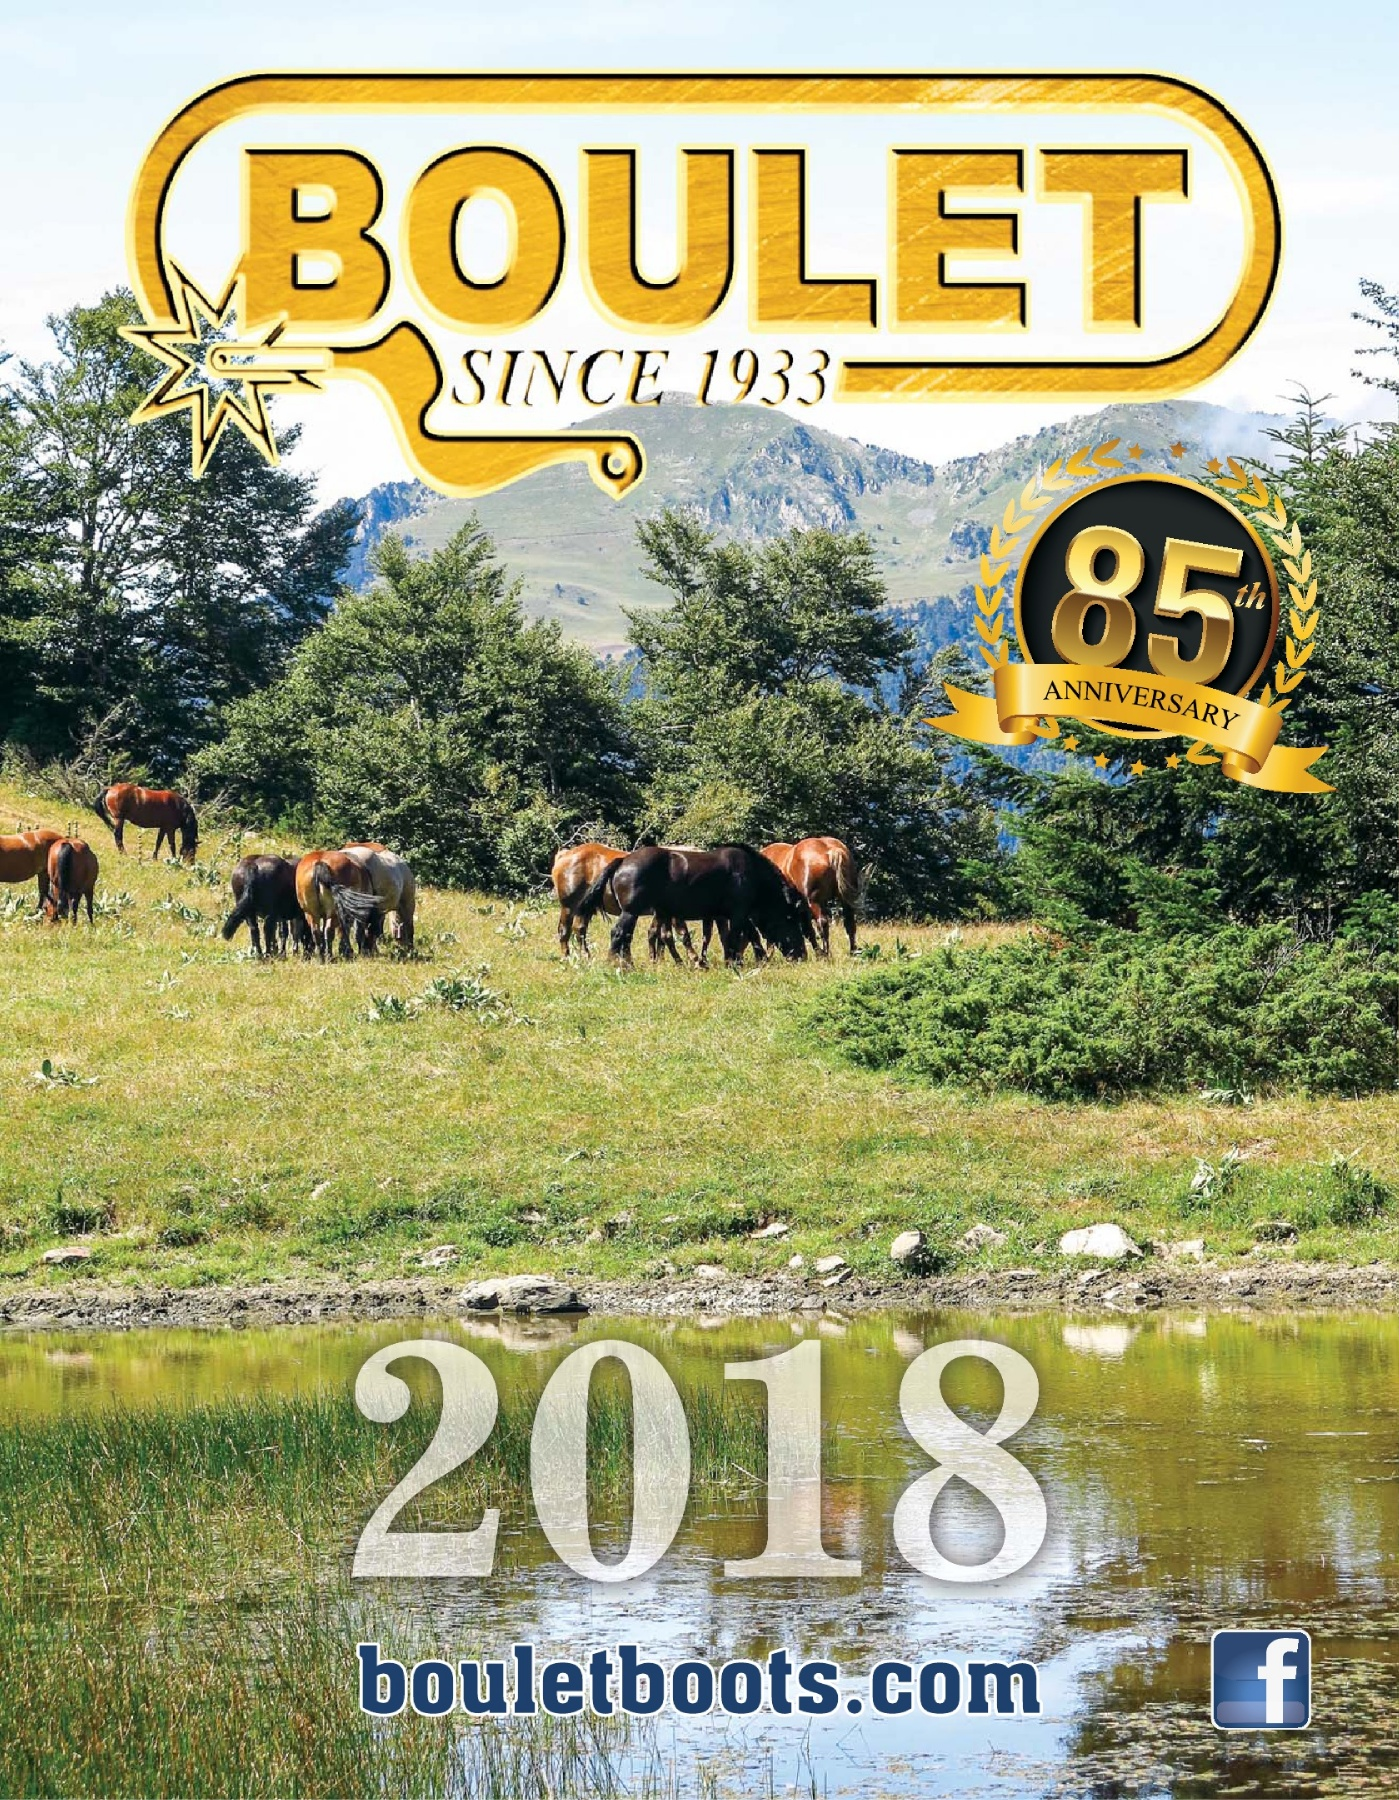 03405ca5b0f catalogue boulet 2018 AN Pages 1 - 33 - Text Version | AnyFlip